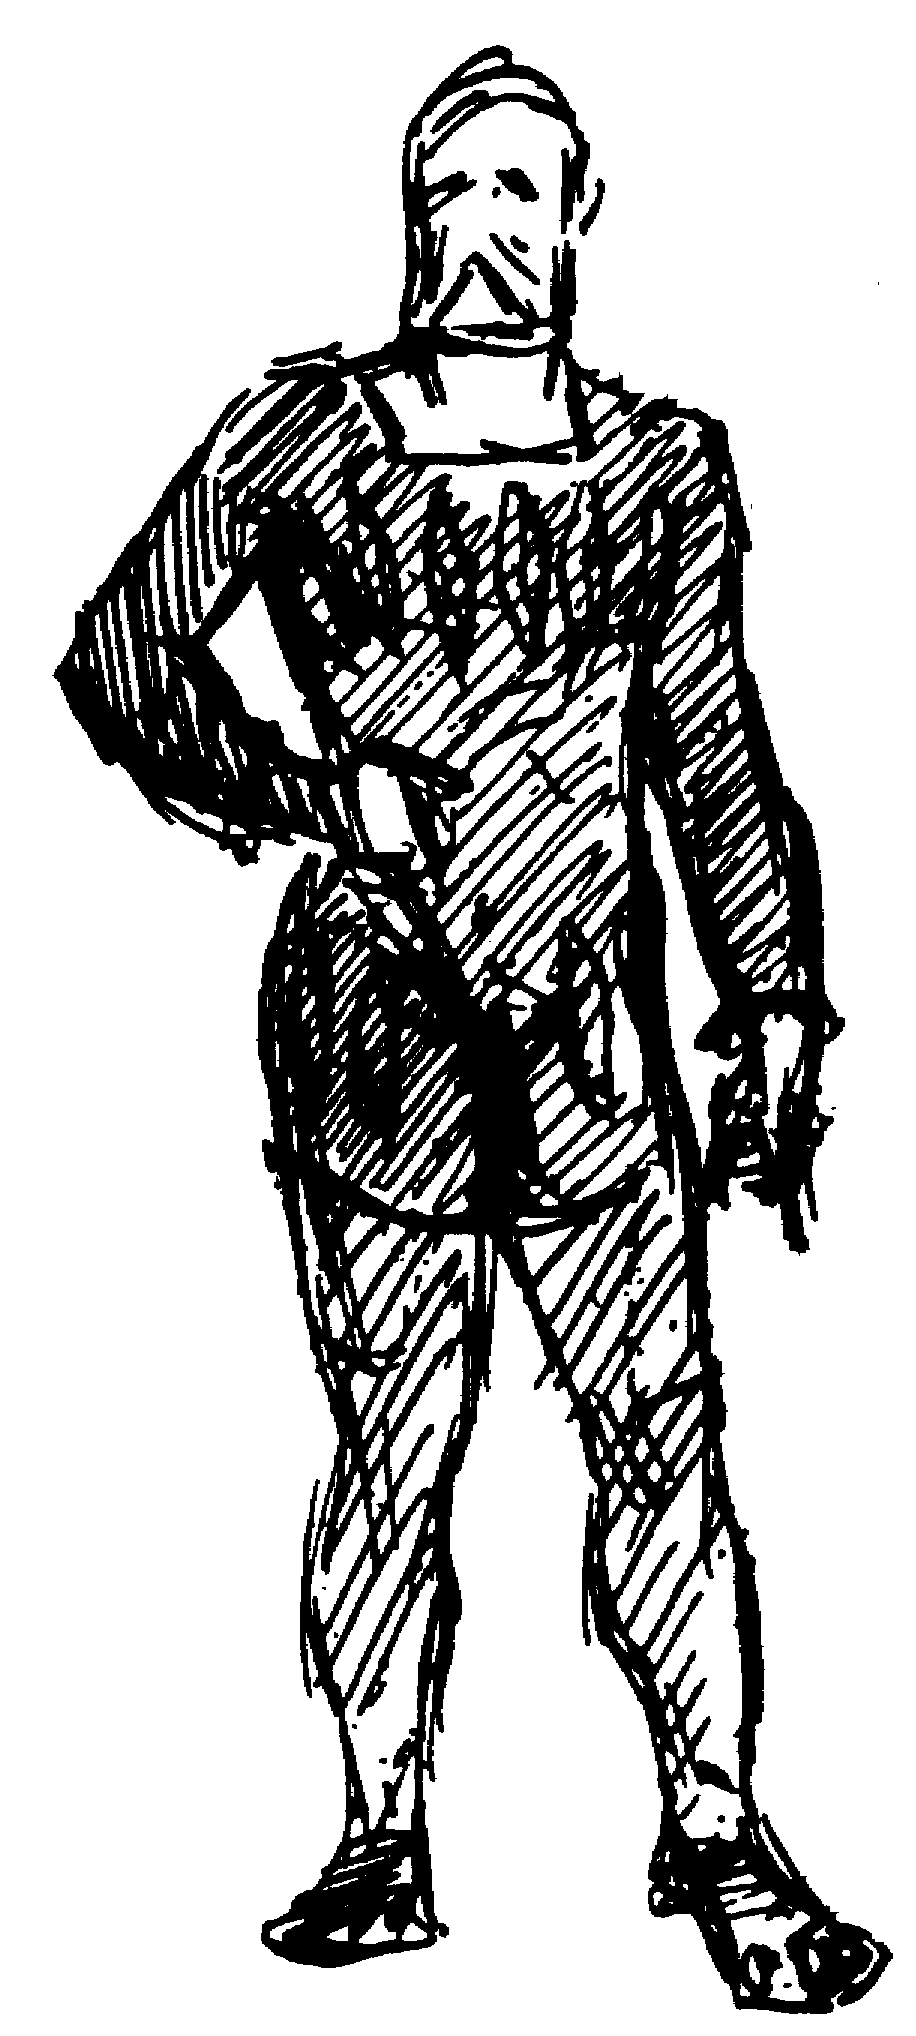 Gilbert sketch of a Shape suit